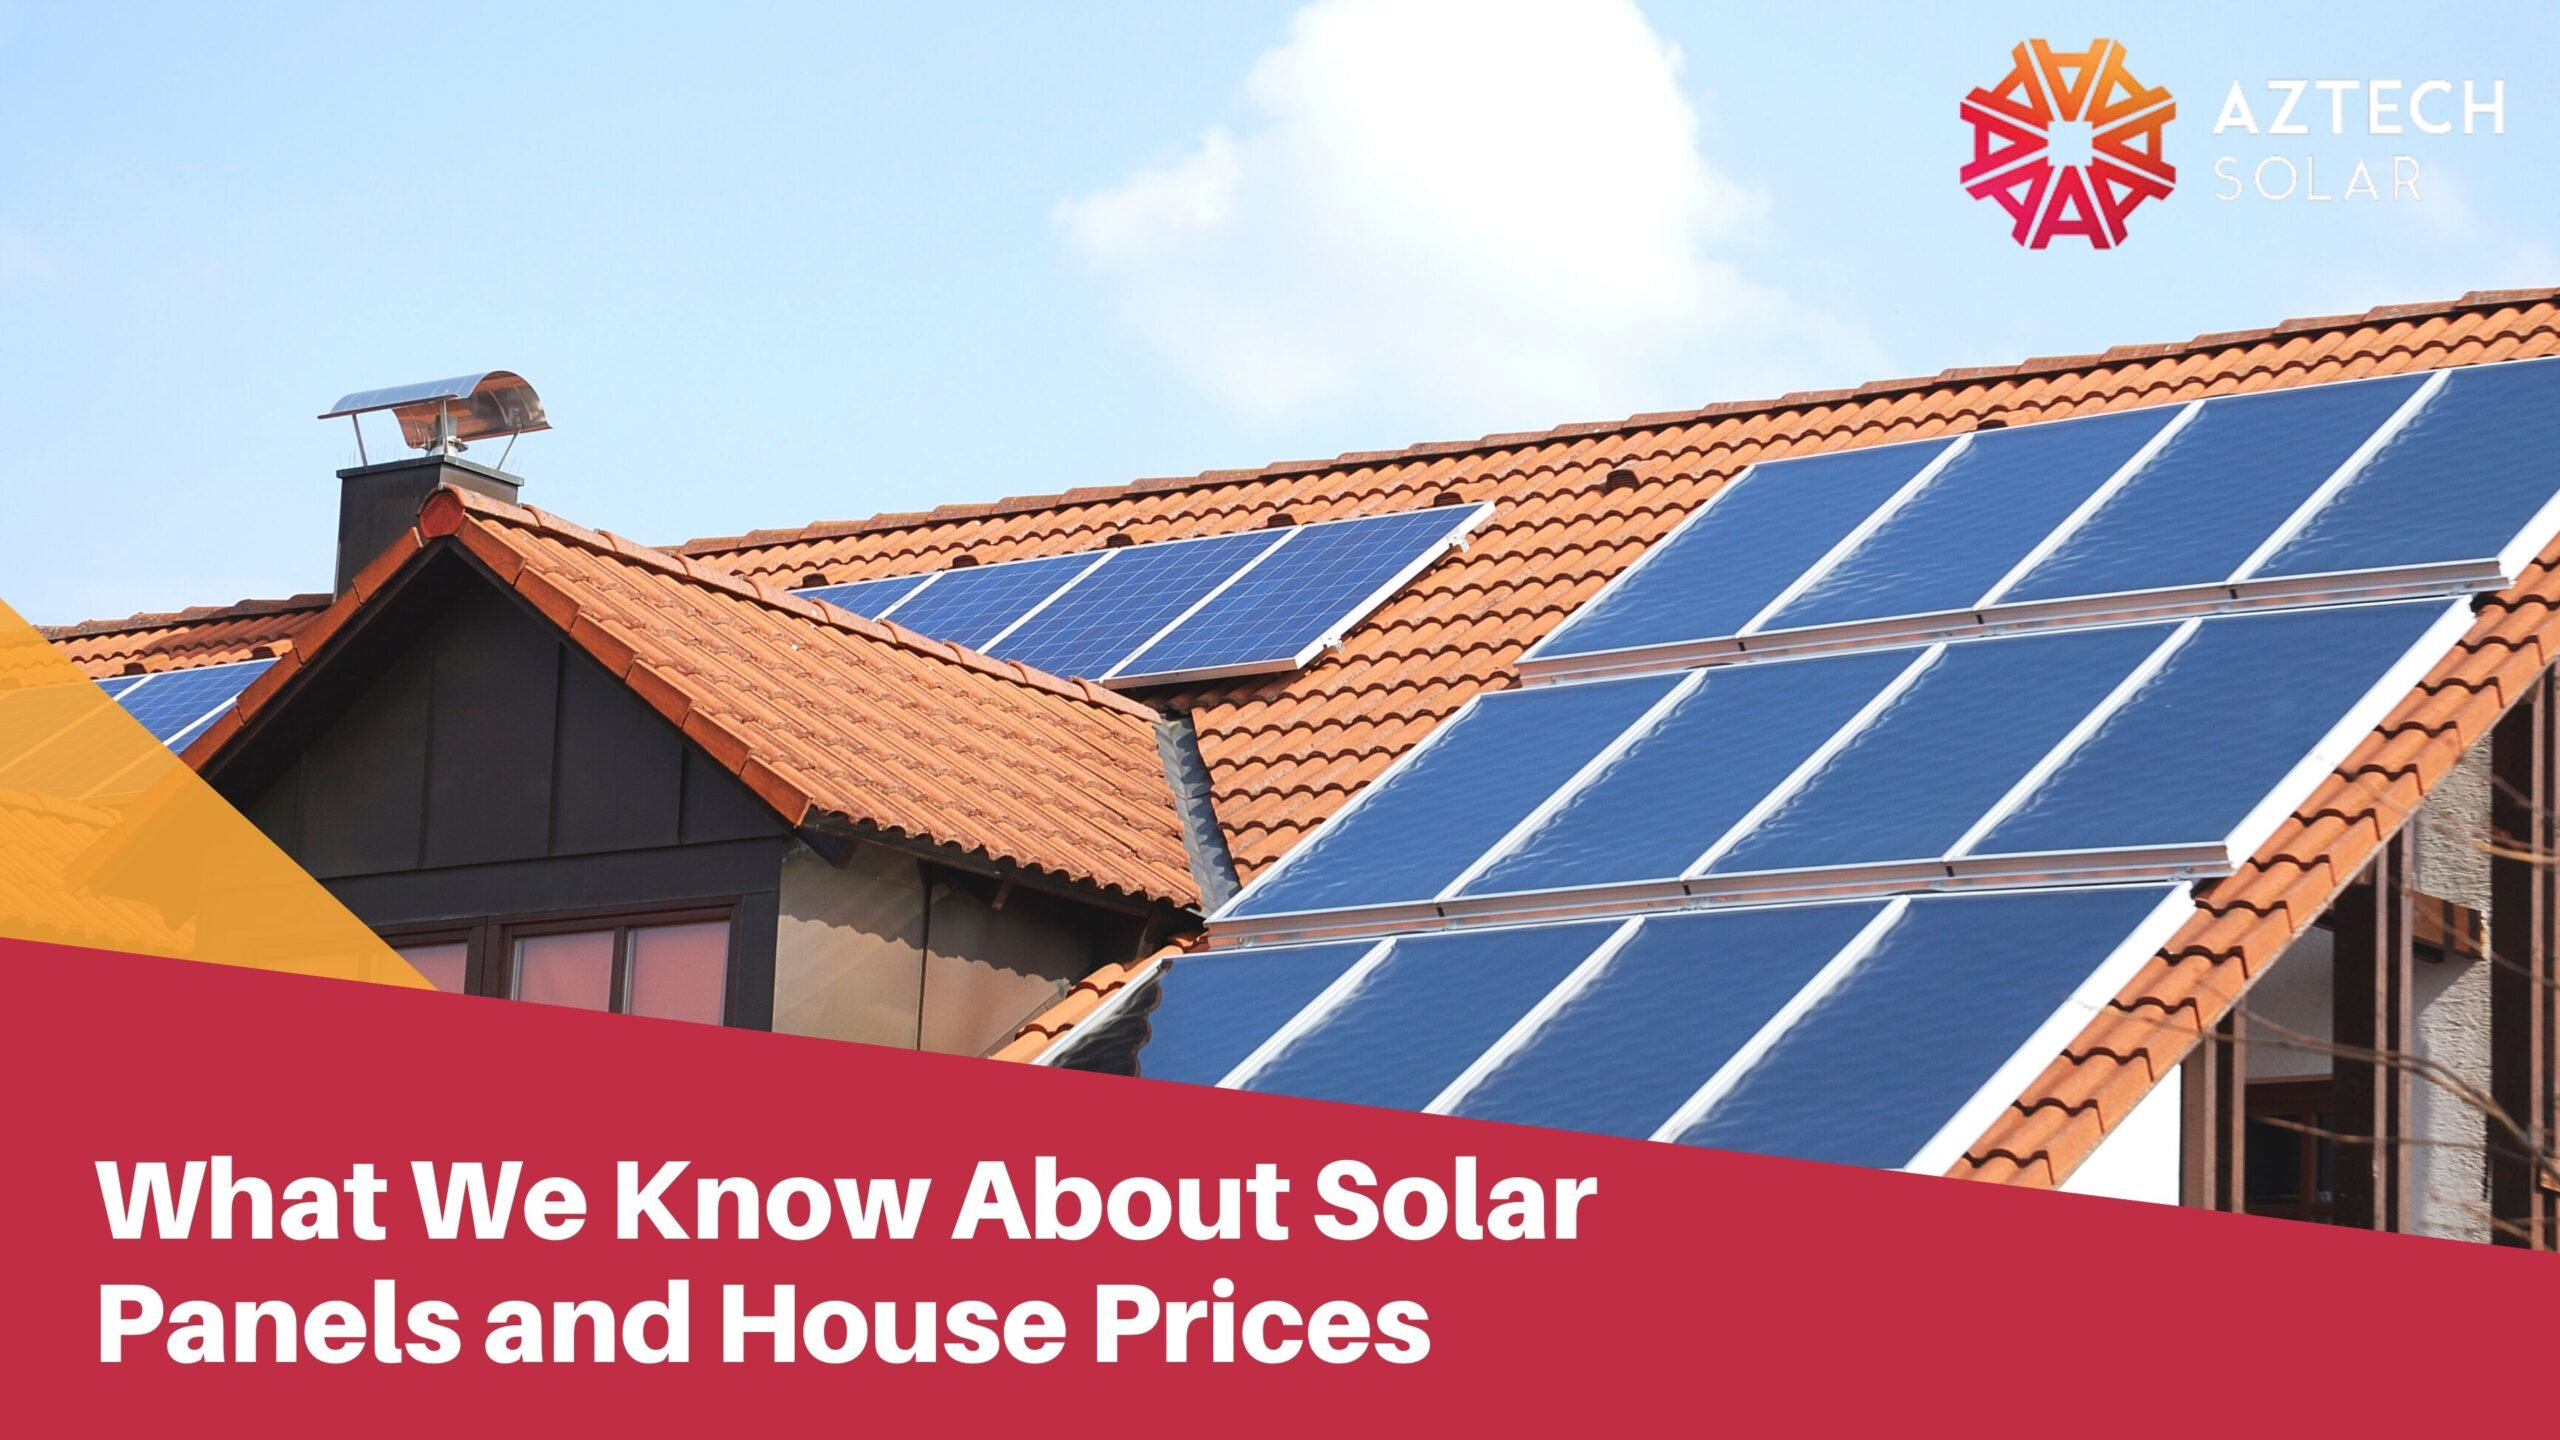 What We Know About Solar Panels and House Prices.